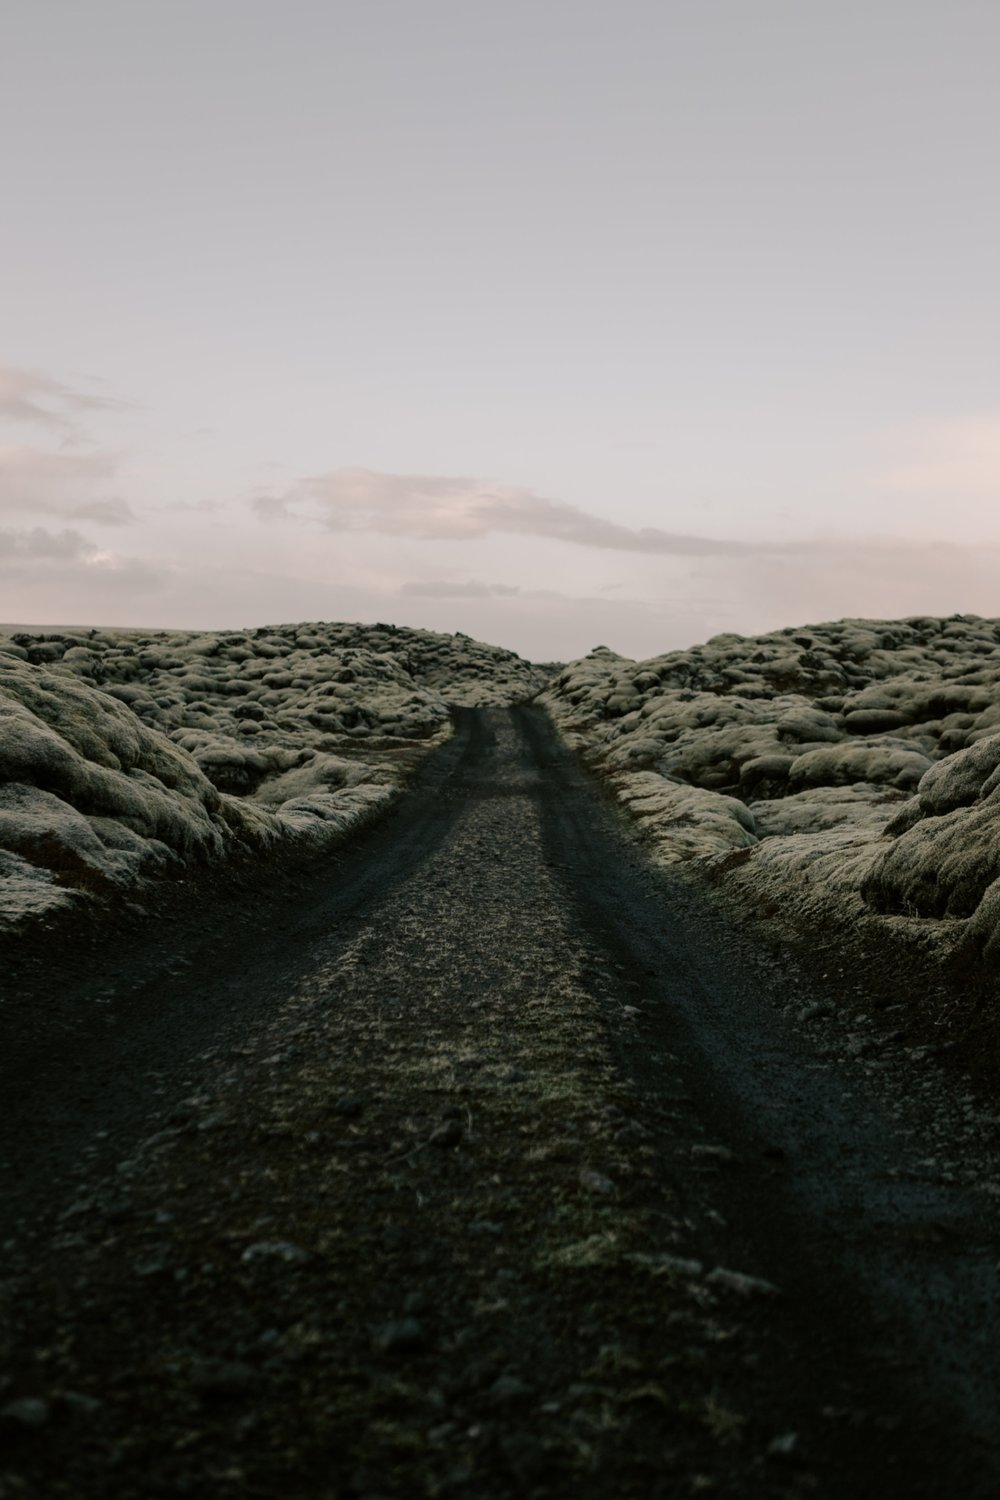 Iceland Lava Field Road Print by Photographer Desiree Leilani